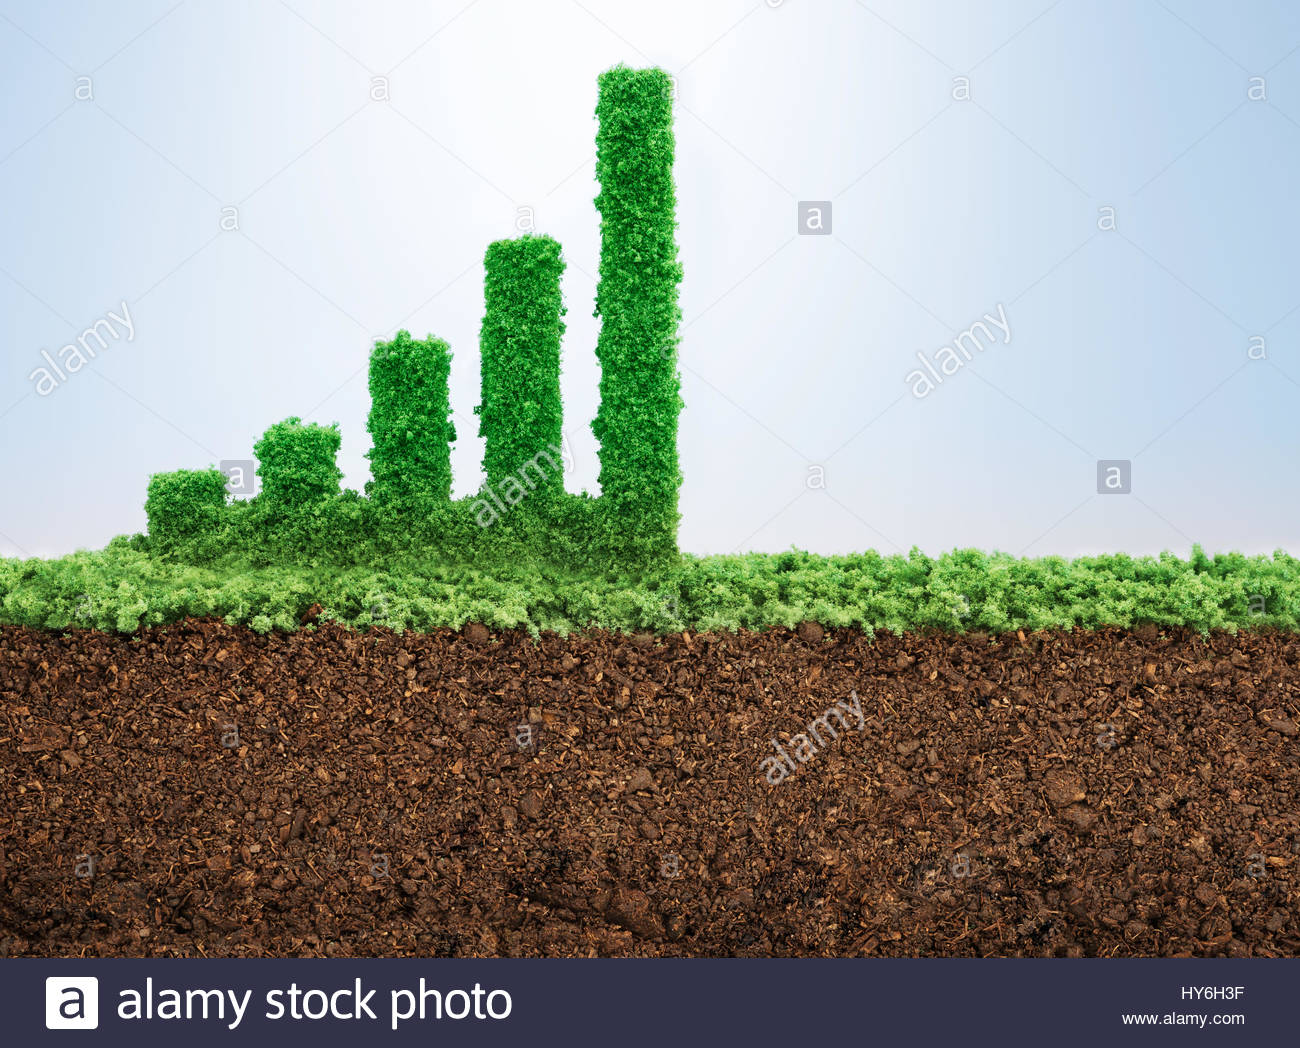 Business growth concept with grass growing in shape of graphic bar - Stock Image